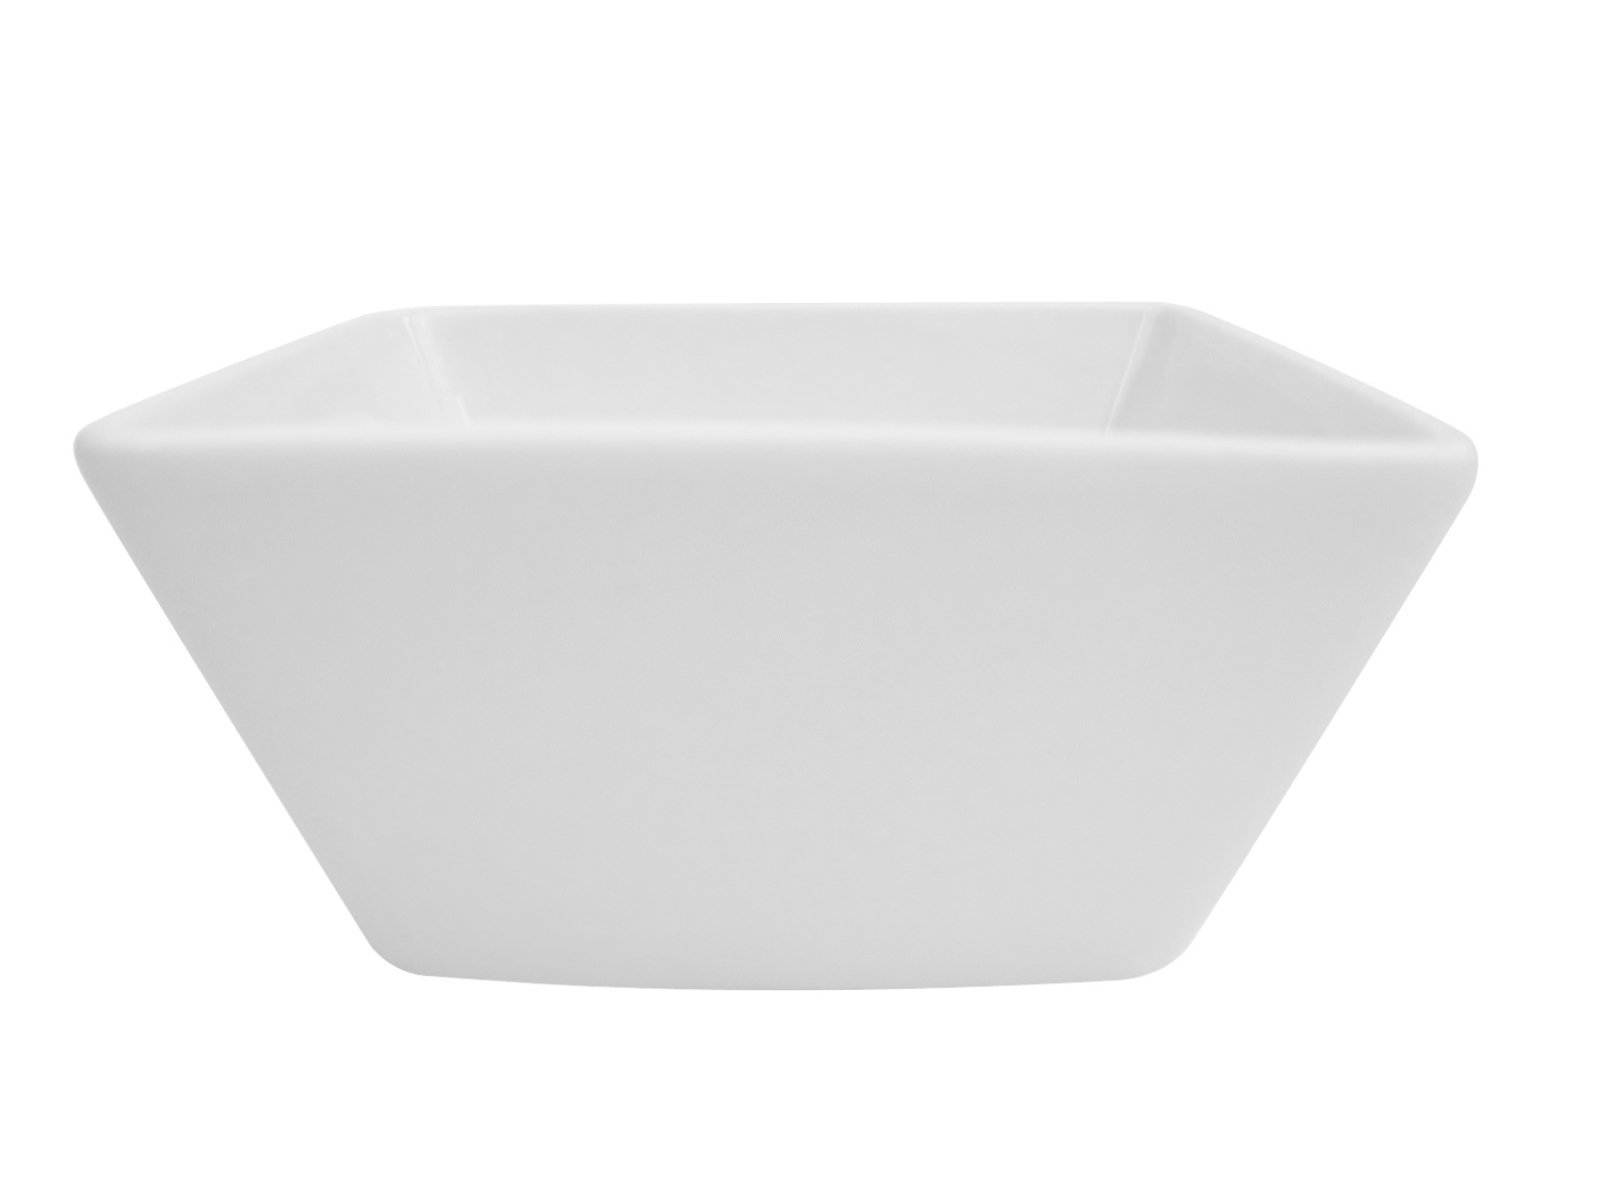 CAC China KSE-DB3 Kingsquare 3-1/4-Inch 4-Ounce Super White Porcelain Deep Square Bowl, Box of 48